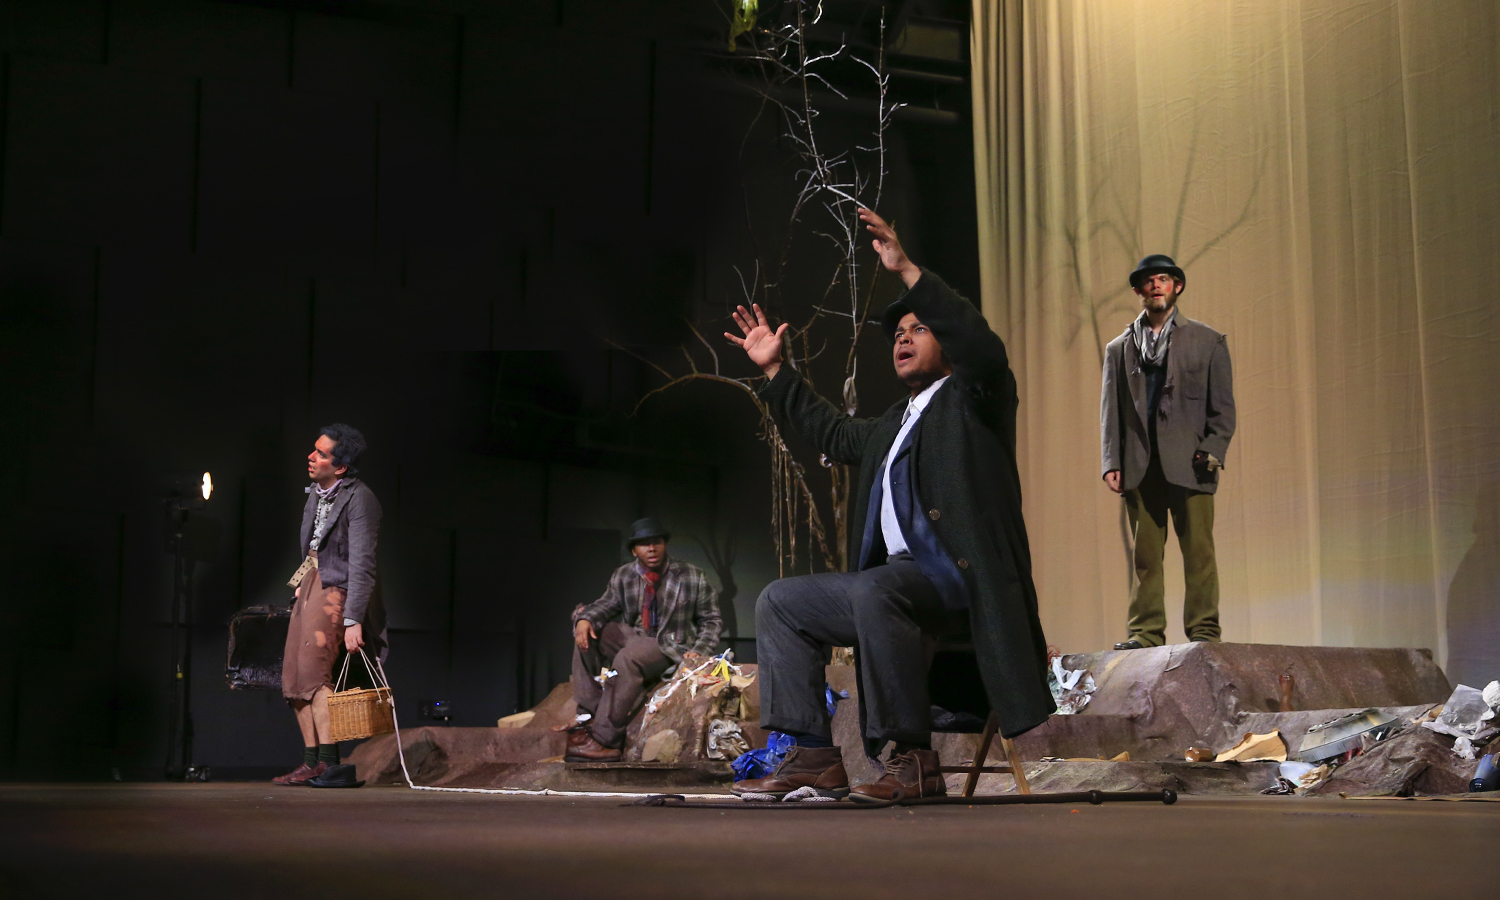 Students rehearse for HWS Theatre's upcoming production of Waiting for Godot, a tragicomedy by Samuel Beckett. Directed by Associate Professor of Theatre Heather May, the show can be soon on Thursday, April 12 and Friday, April 13 at 7:30 p.m. and Saturday, April 14 at 2 p.m. and 7:30 p.m. in the McDonald Theatre of the Gearan Center for the Performing Arts.